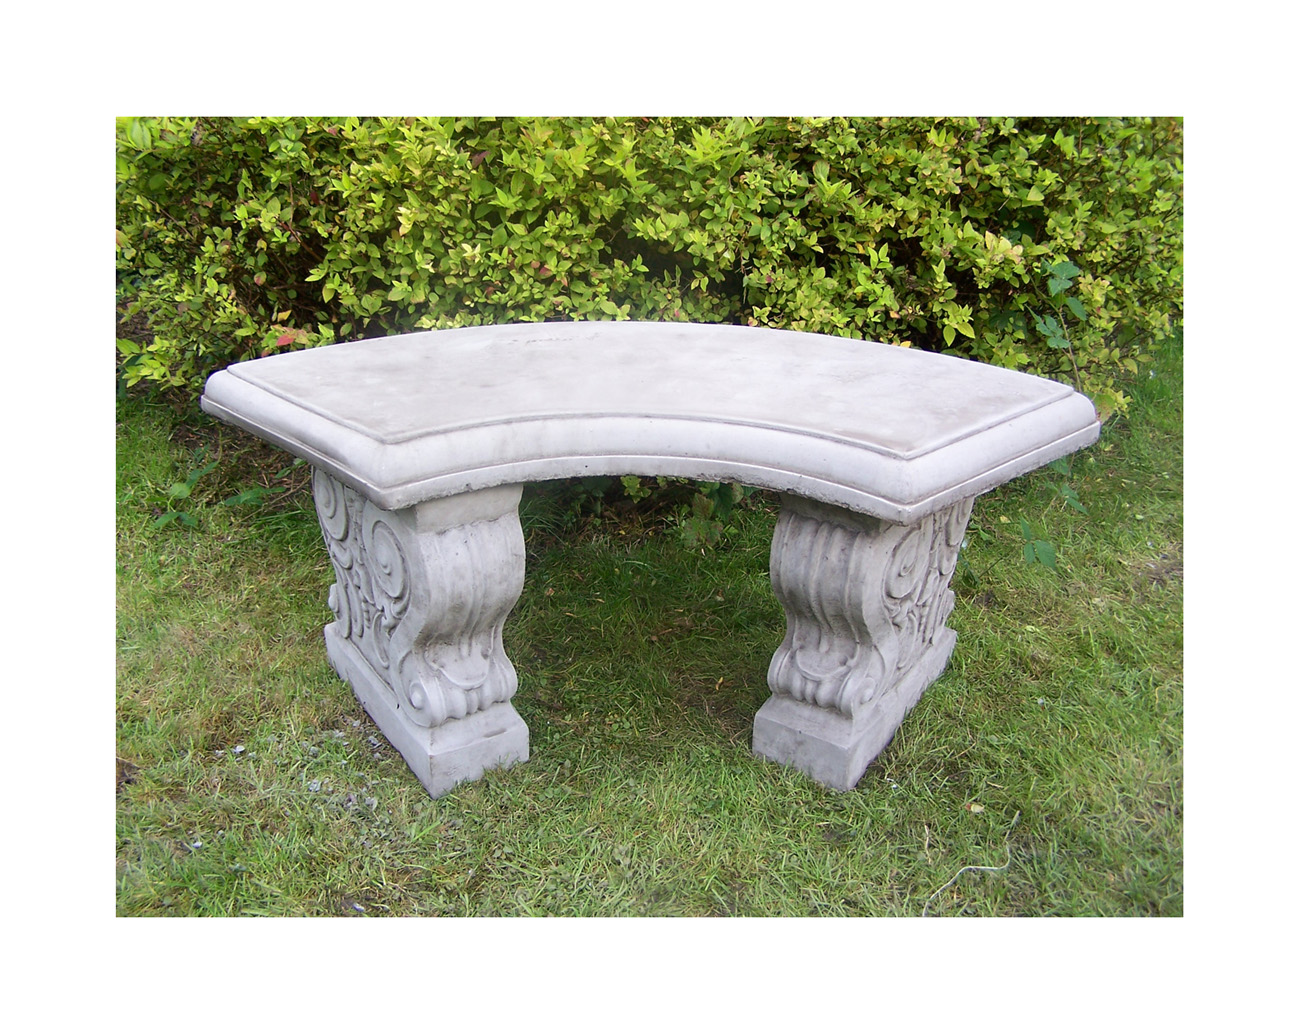 large curved garden bench hand cast stone garden ornament. Black Bedroom Furniture Sets. Home Design Ideas